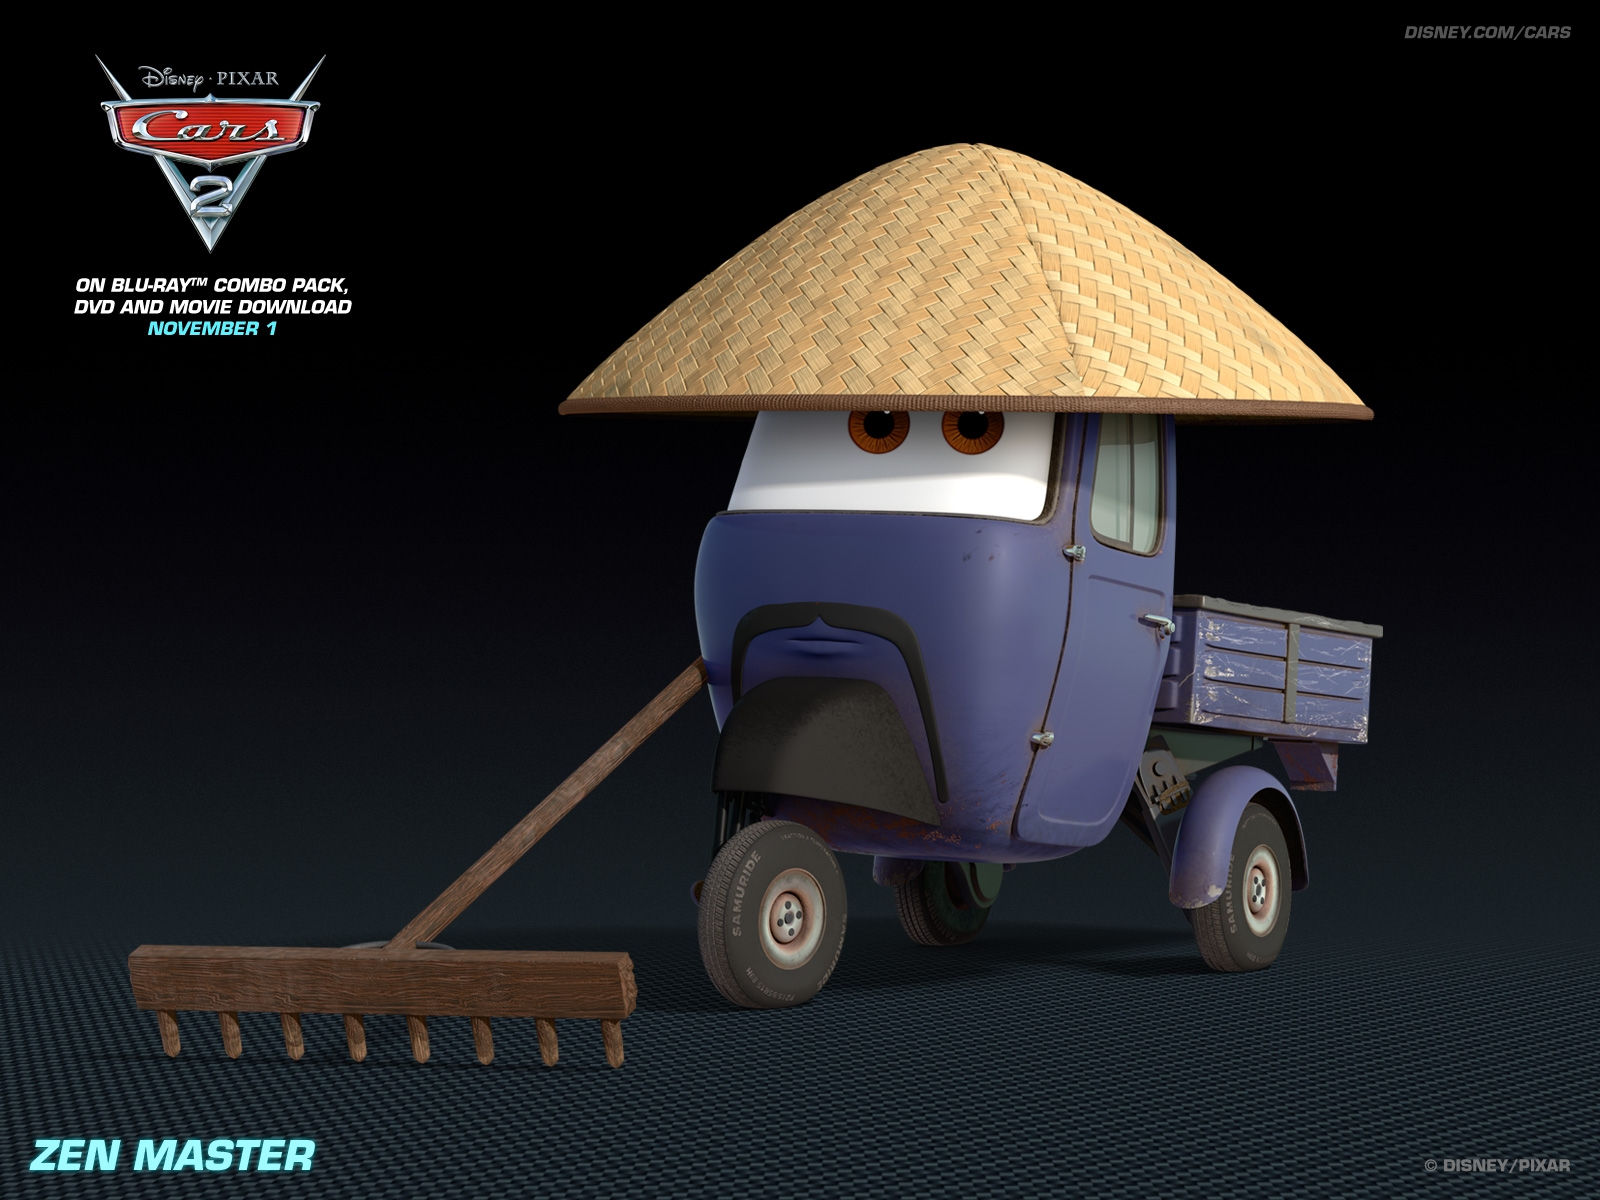 zen master disney pixar cars 2 free hd wallpaper 1600 1200